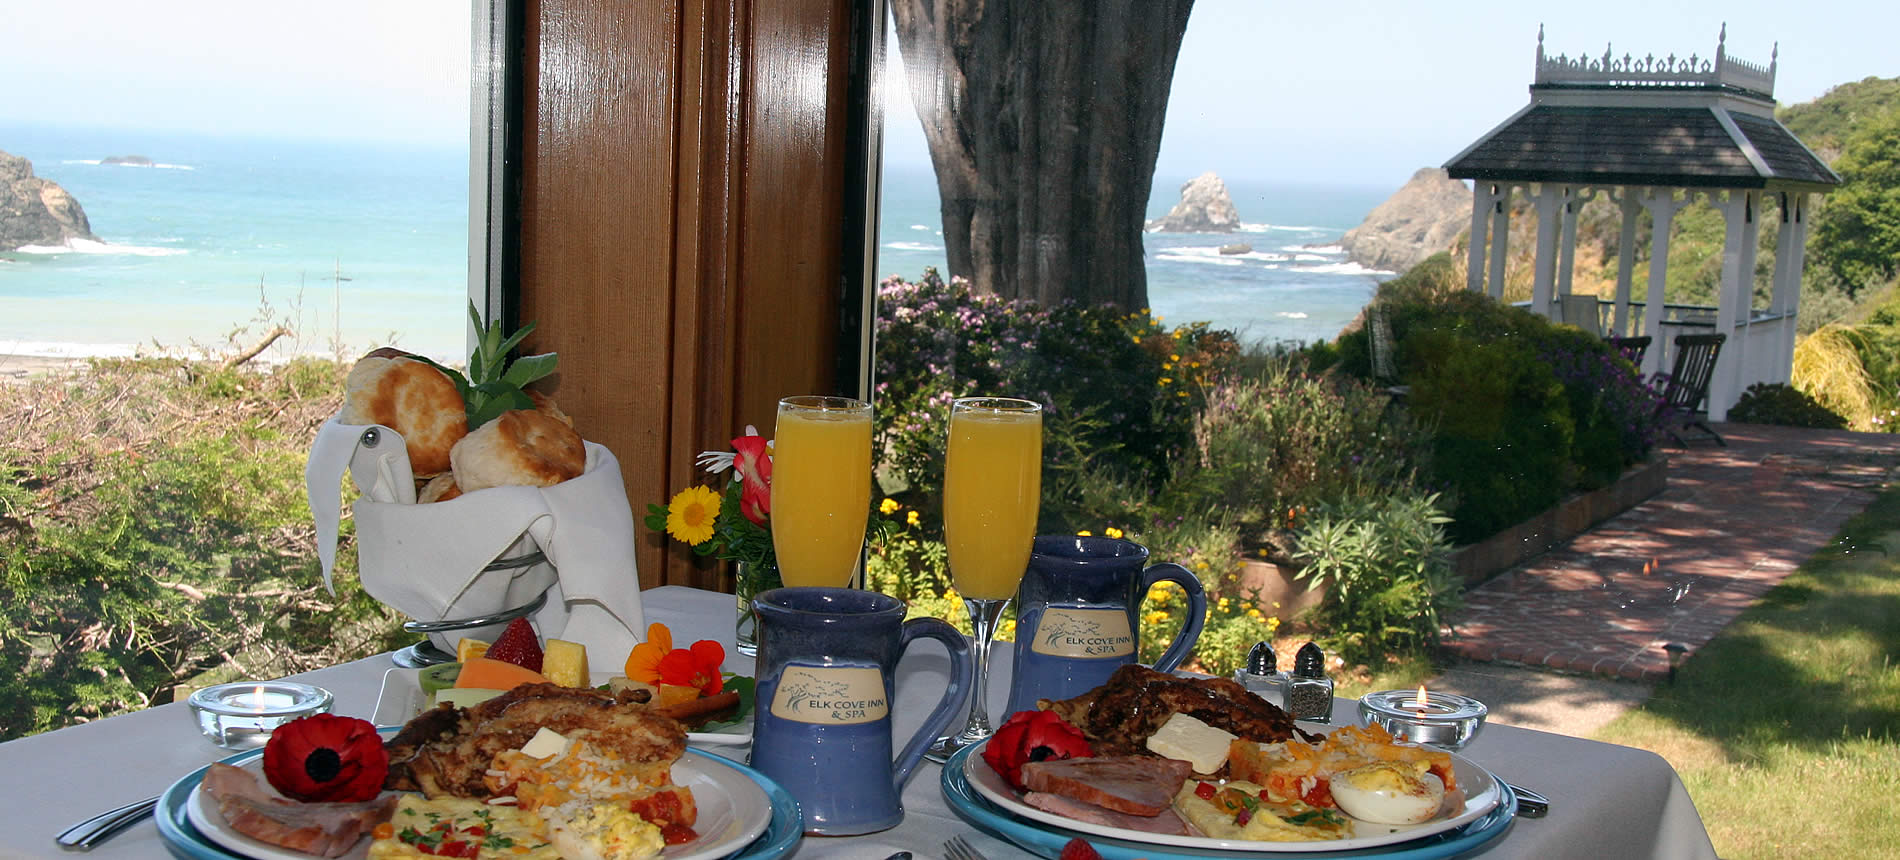 elk cove inn breakfast with ocean view